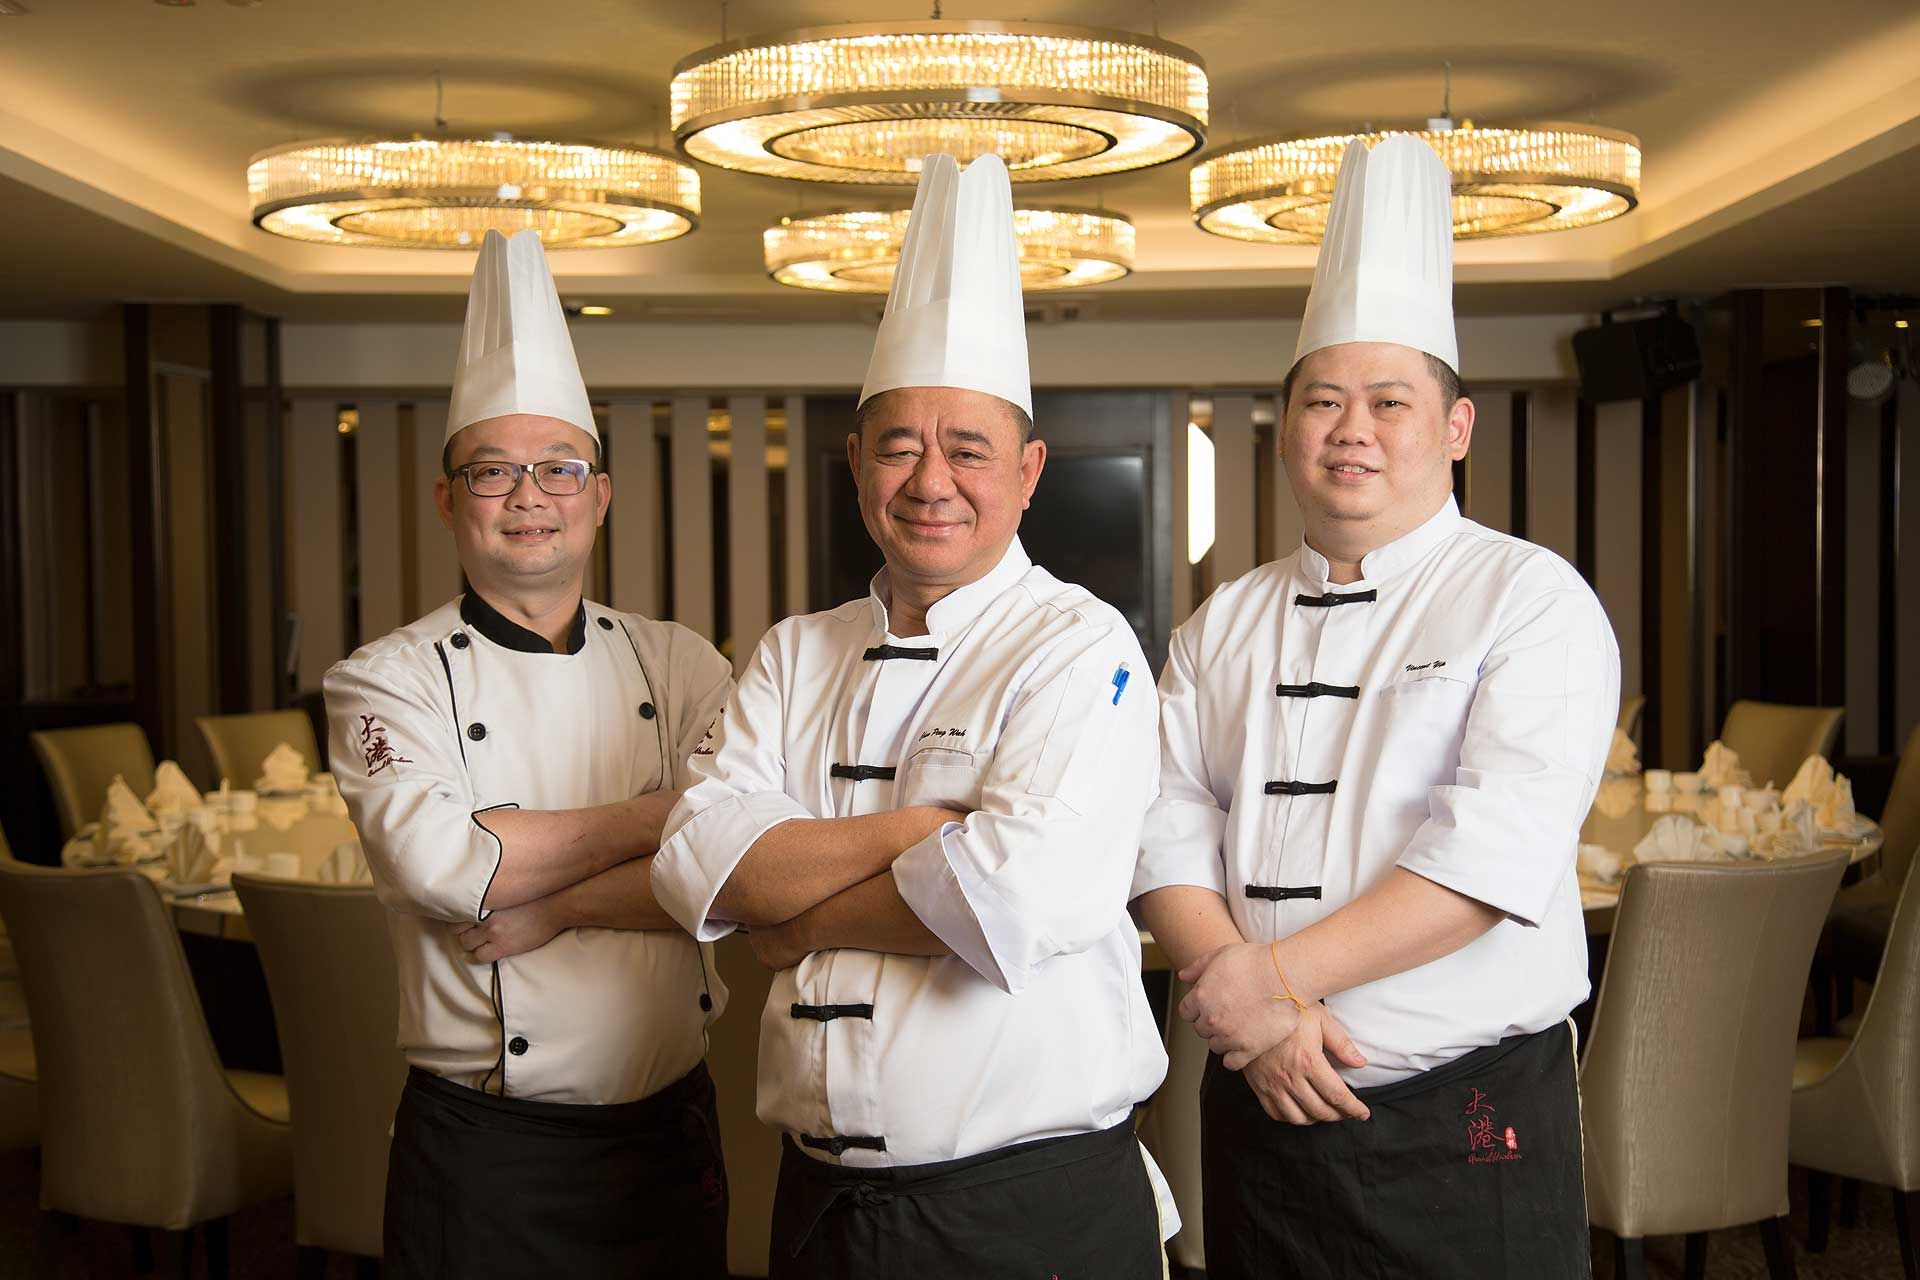 Grand Harbour's Chefs